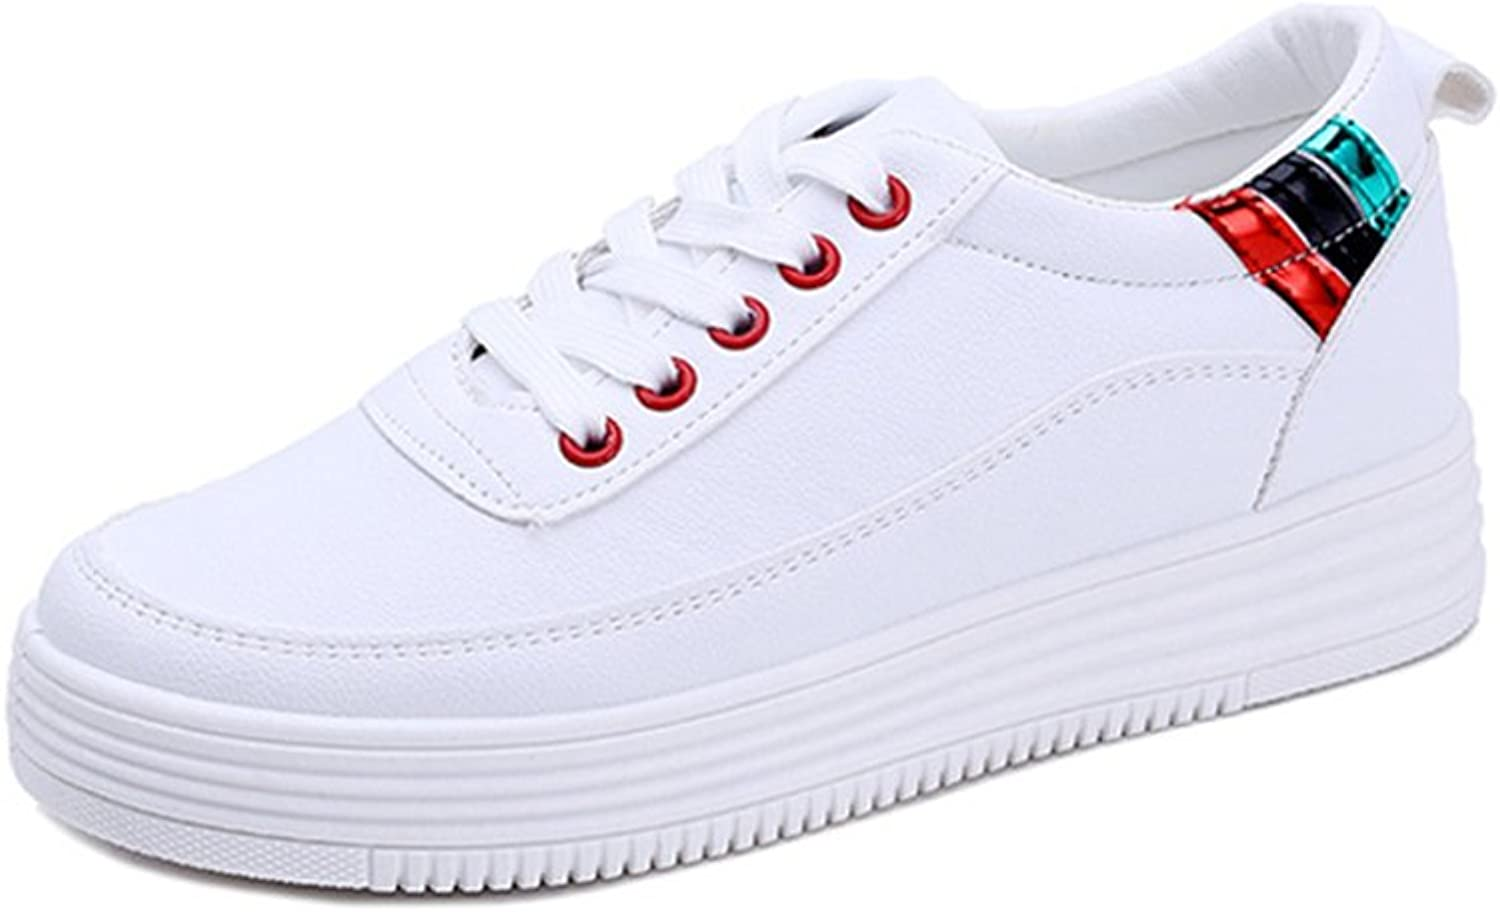 Women's Sneakers Casual Fashion Breathable Lightweight Sport shoes